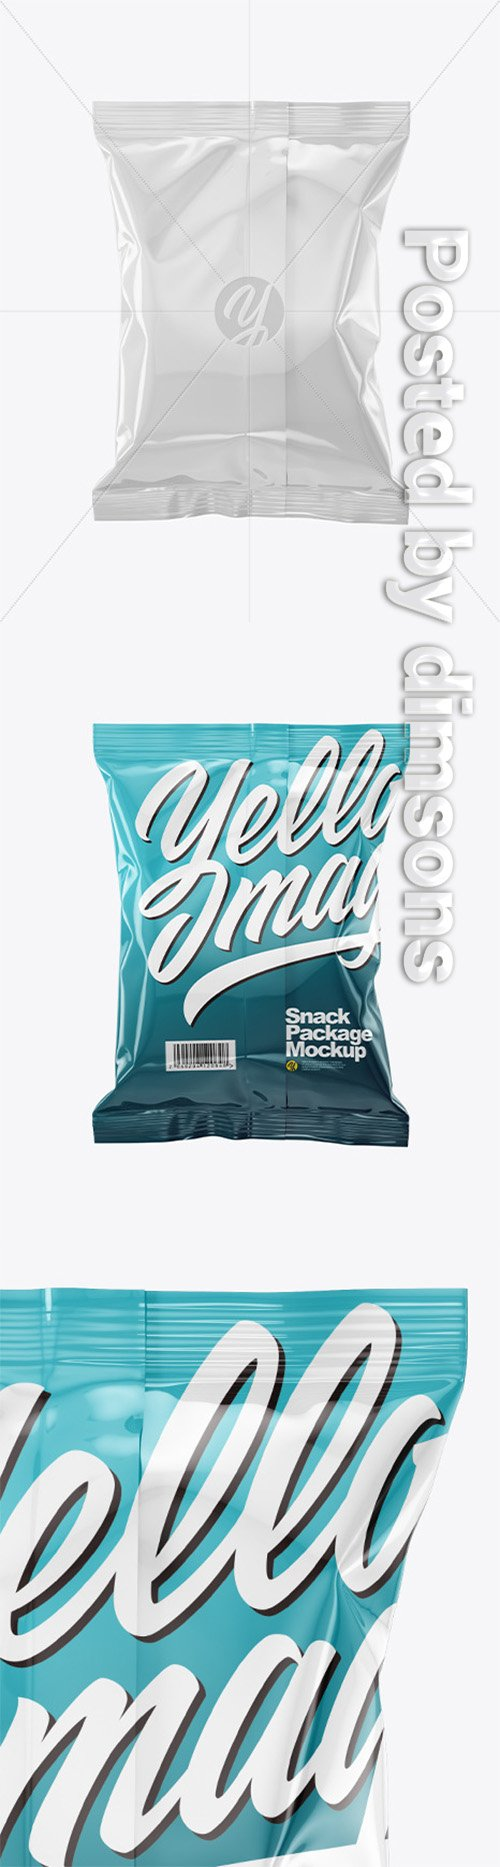 Glossy Snack Package Mockup - Back View 50530 TIF